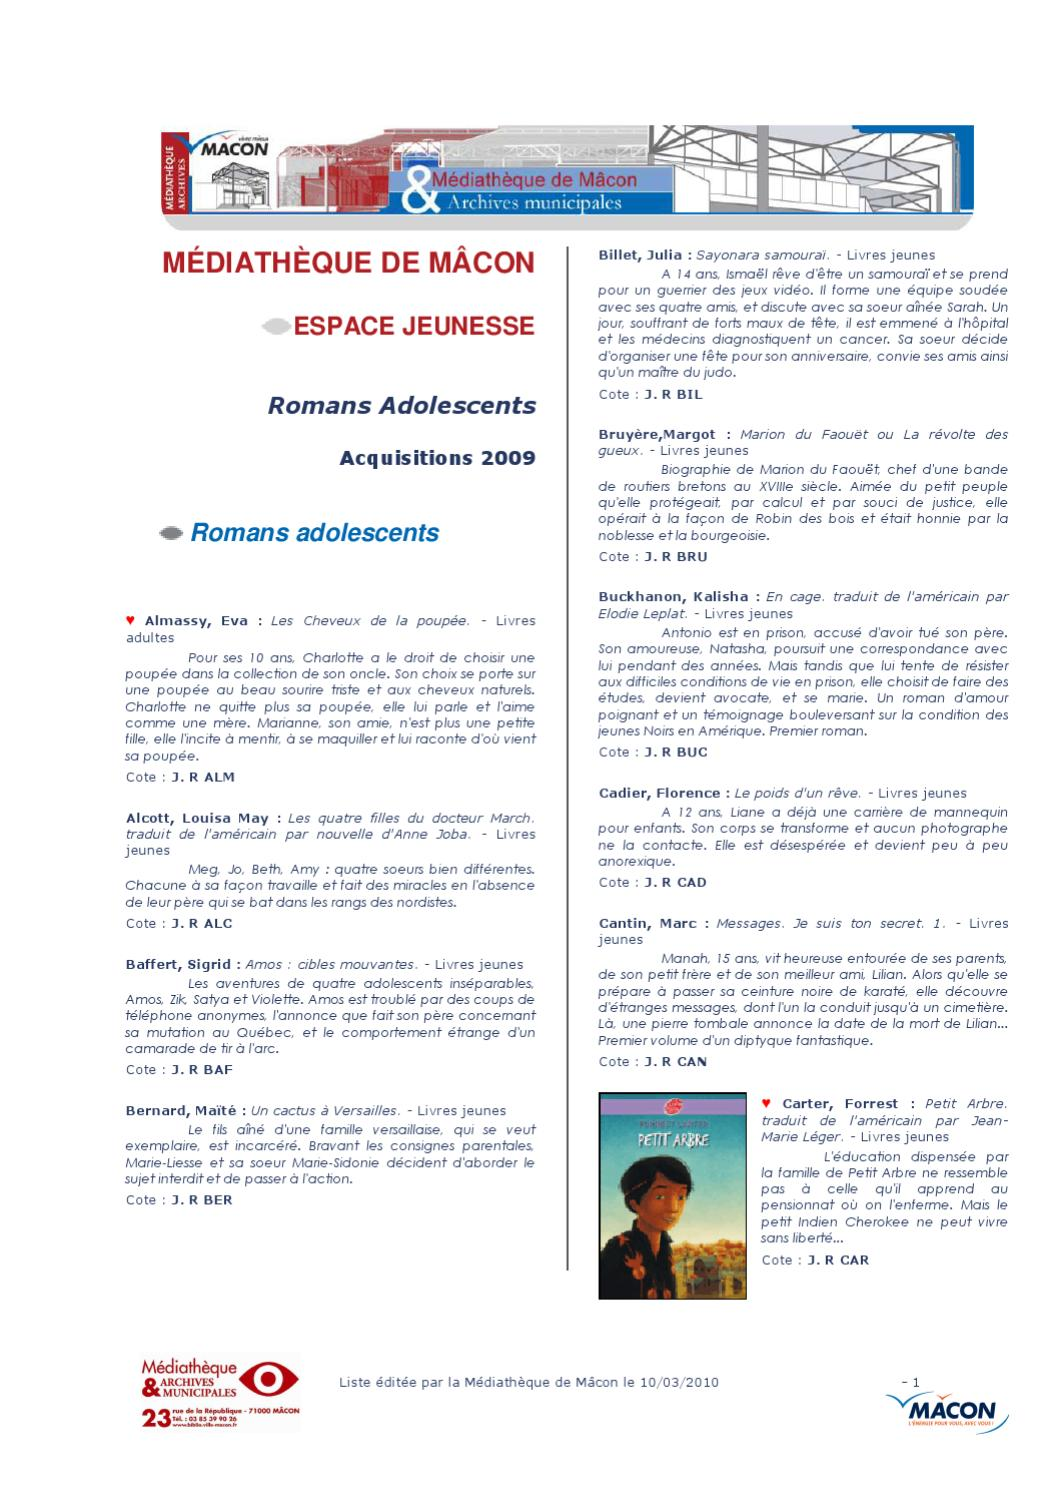 Romans Pour Les Adolescents By Mediatheque De Macon Issuu